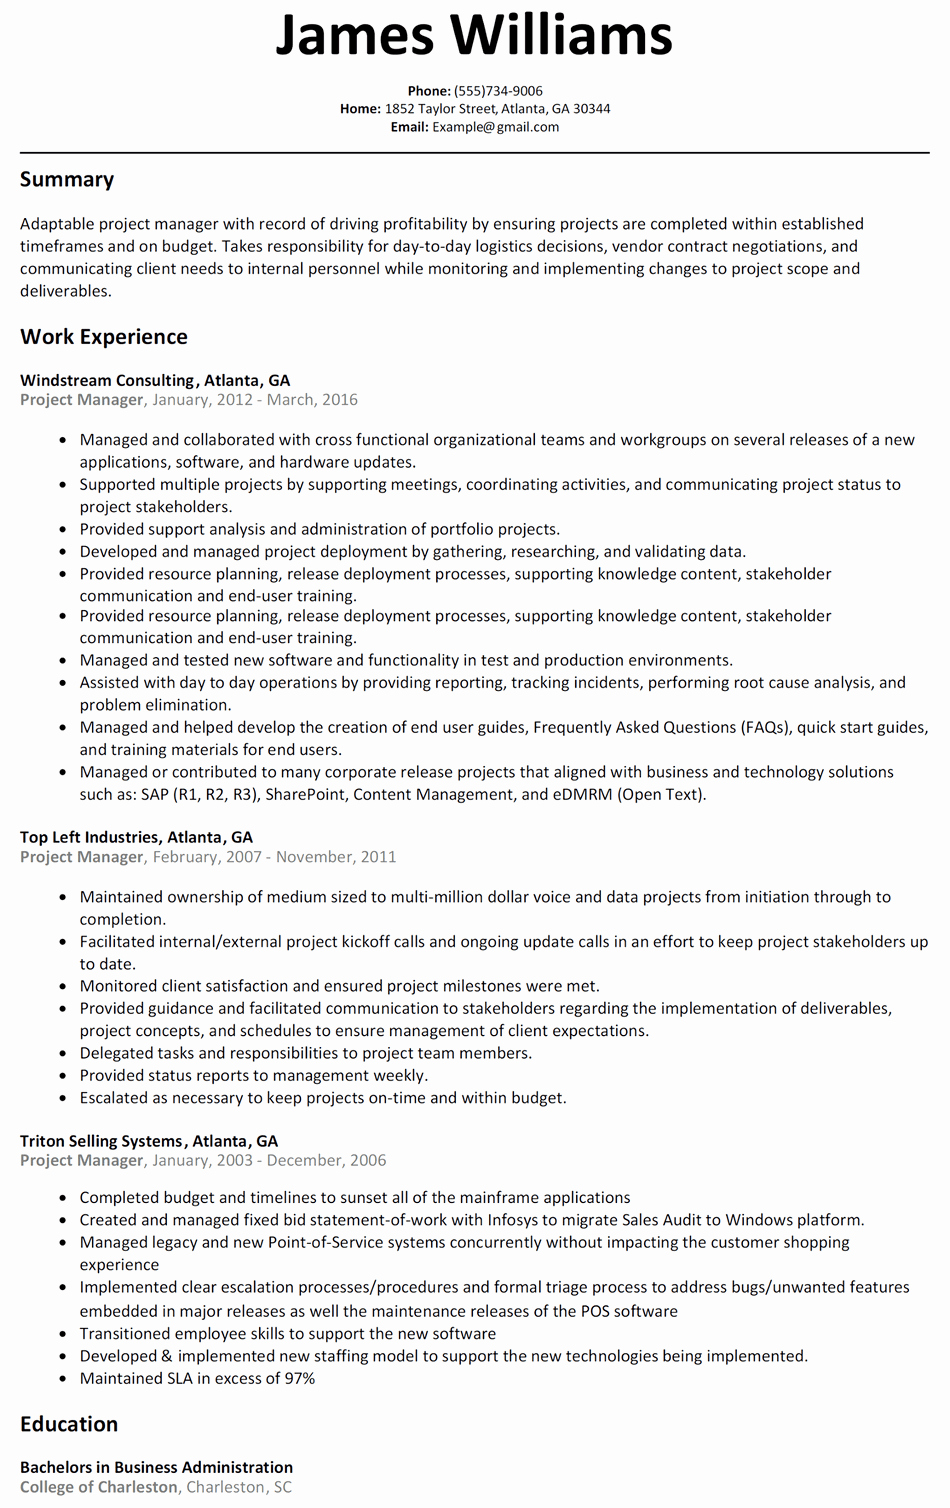 Project Manager Resume Template Inspirational Project Manager Resume Sample Resumelift